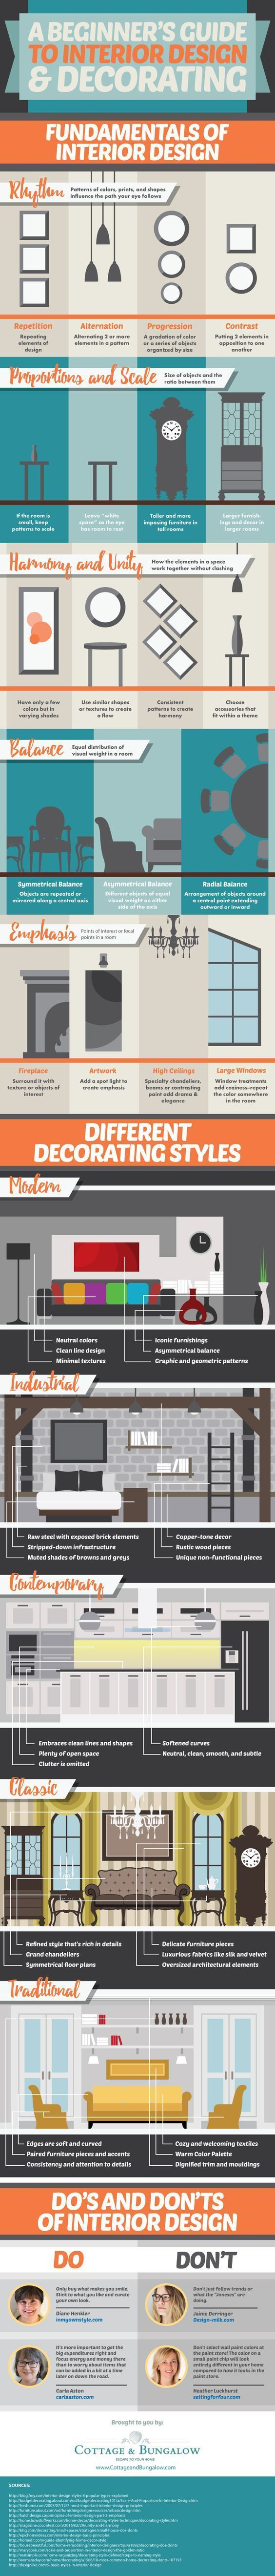 The Beginner's Guide to Interior Design and Decorating